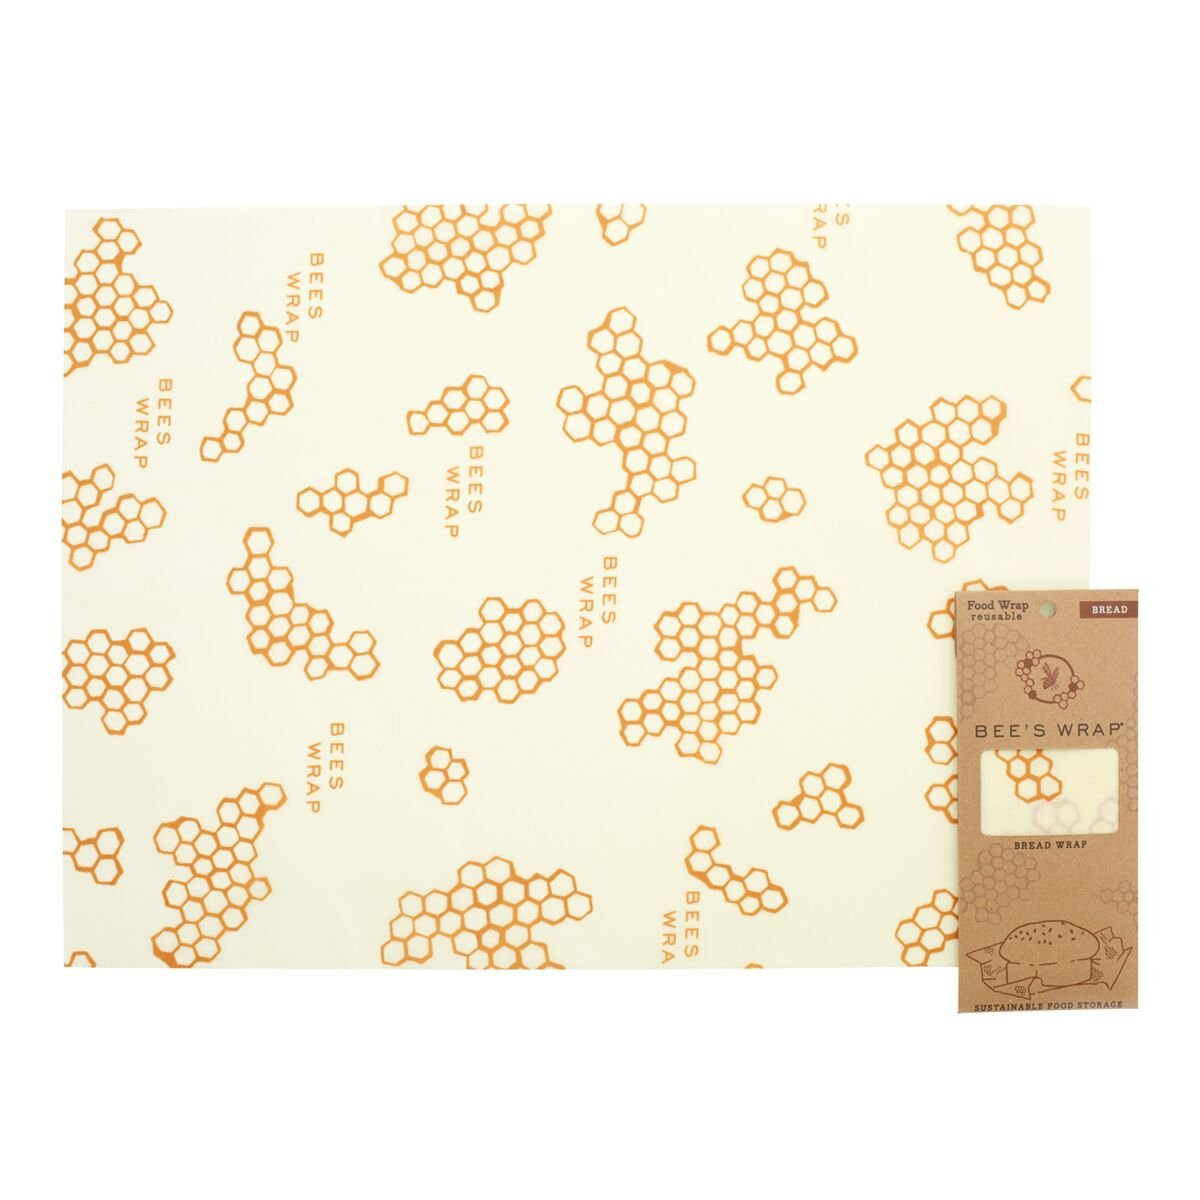 """Bee's Wrap Reusable Bread Wrap, Eco Friendly, Sustainable, and Plastic Free Bread Keeper & Food Storage - 17"""" x 23"""""""